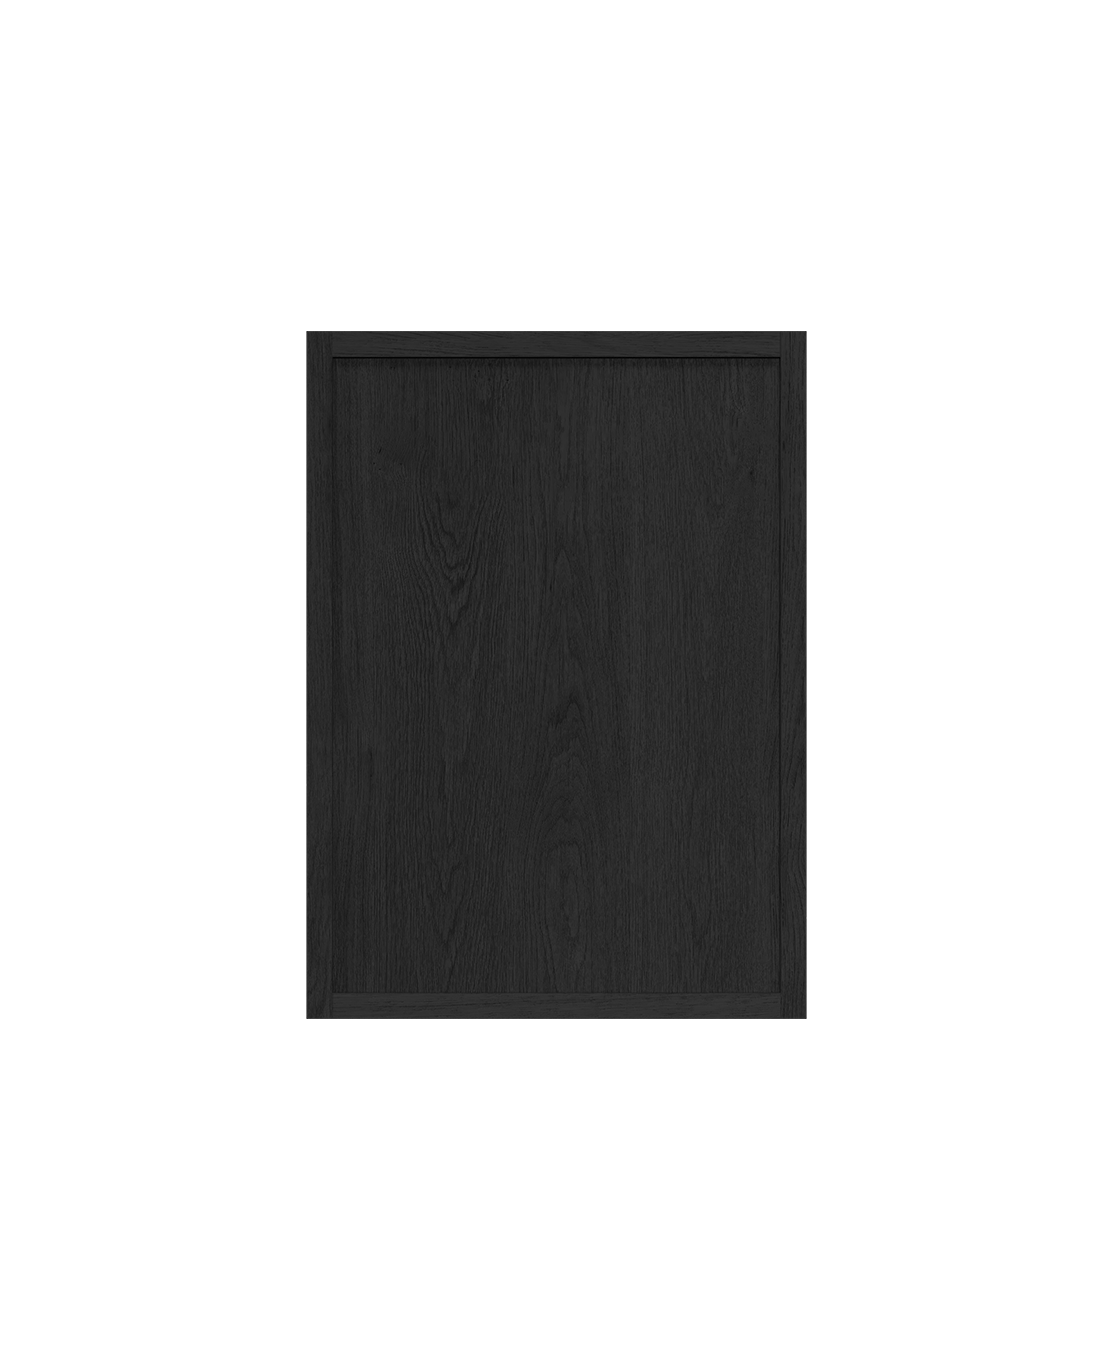 coquo radix midnight black stained oak solid wood modular 2 glass doors wall upper kitchen cabinet 12 inch C1-W-2412-0202-BK